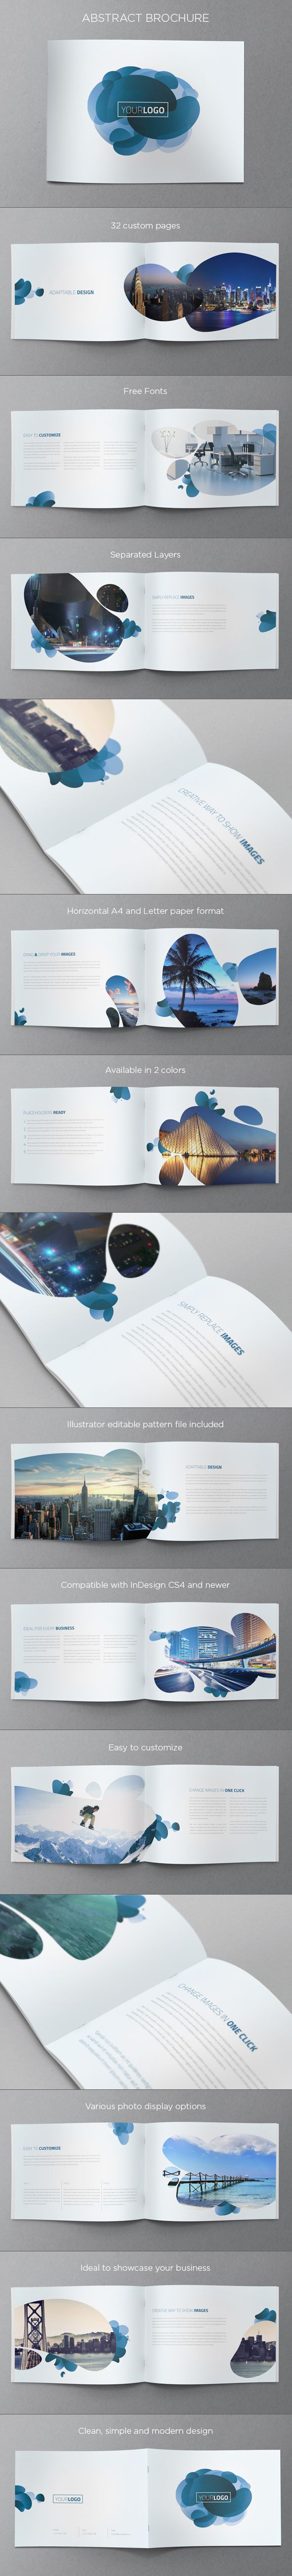 Abstract Modern Brochure. Download here: http://graphicriver.net/item/abstract-modern-brochure/5234402 #design #brochure